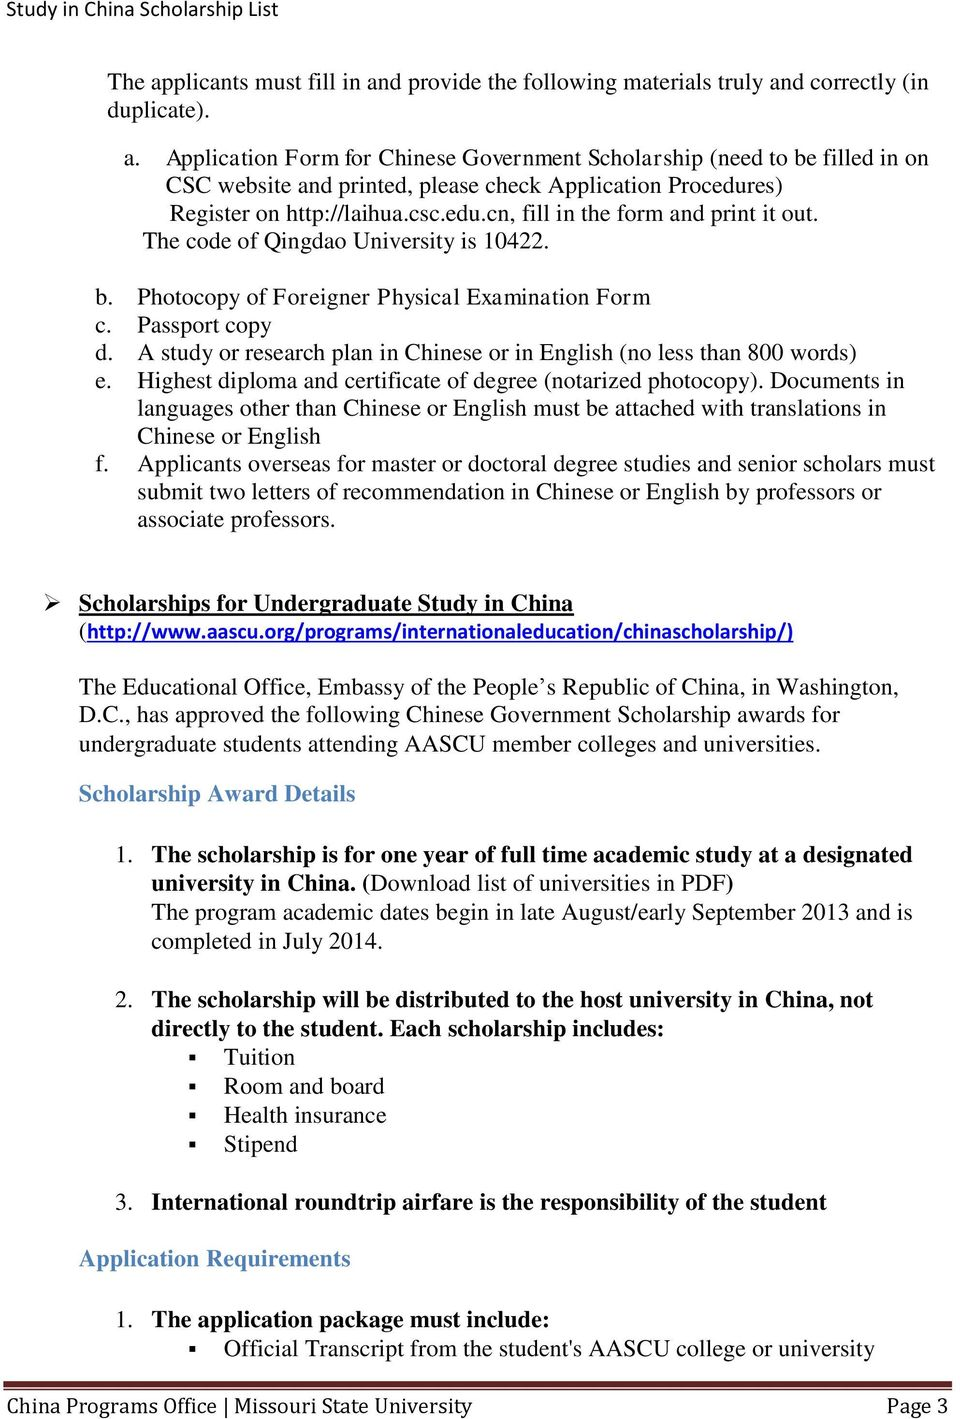 A study or research plan in Chinese or in English (no less than 800 words) e. Highest diploma and certificate of degree (notarized photocopy).